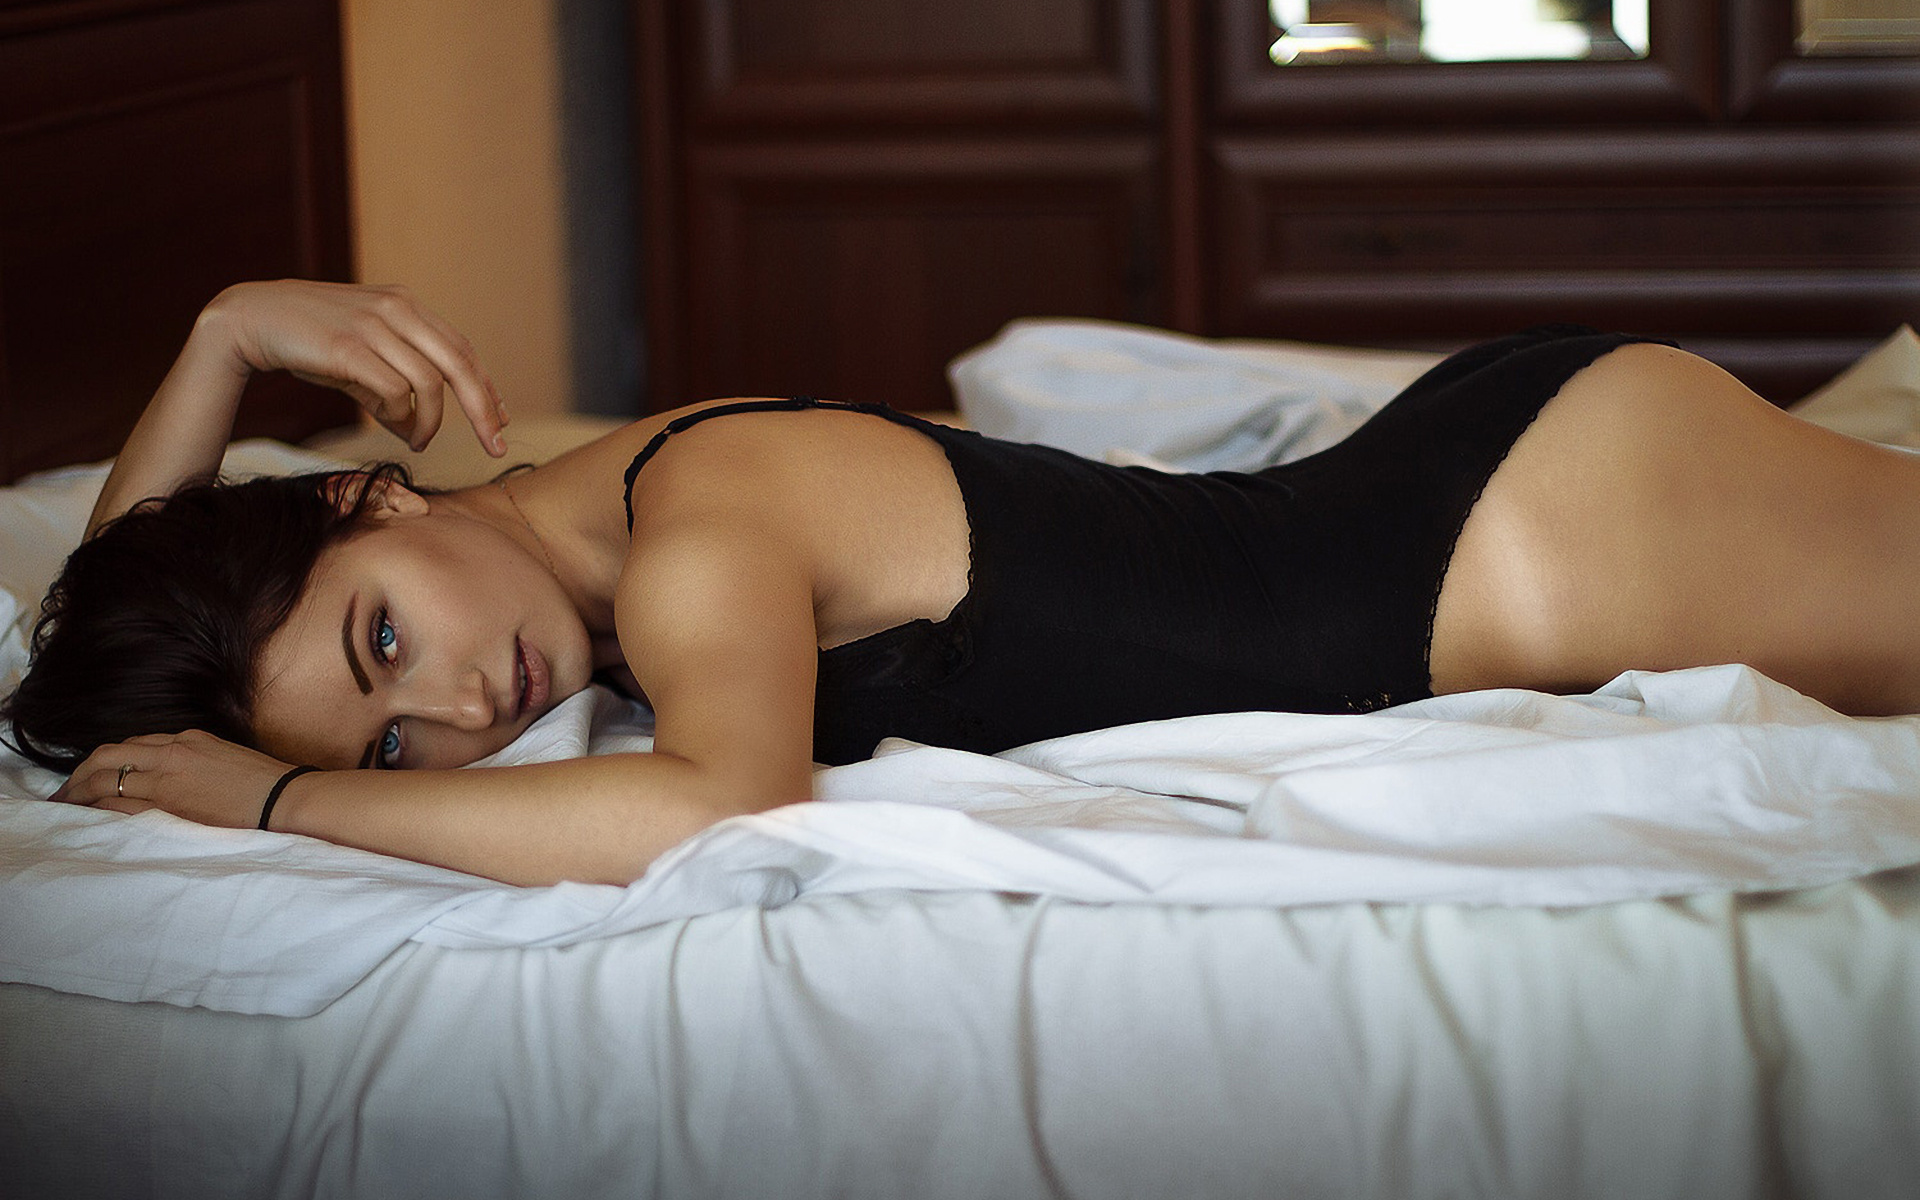 body-woman-in-bed-x-x-sex-imageporn-download